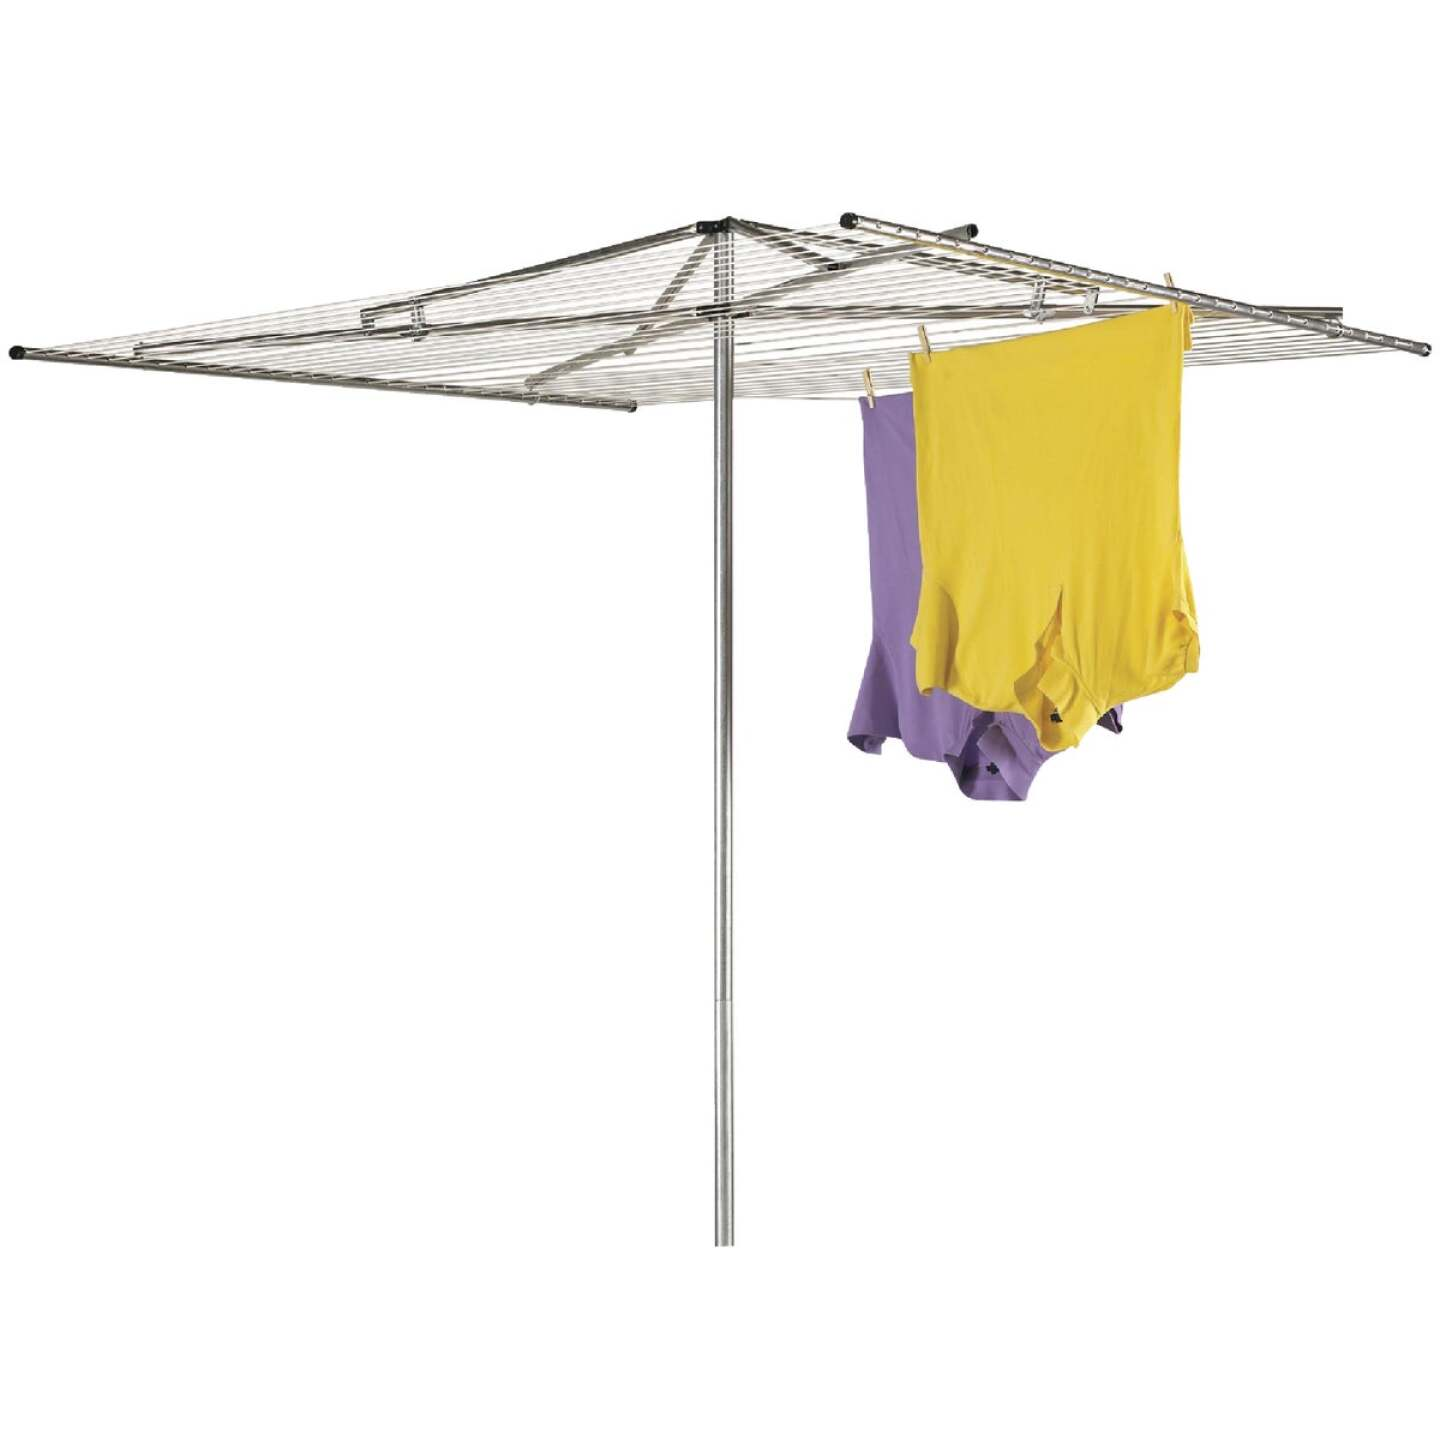 Household Essentials Sunline 72 In. 72 In. 180 Ft. Drying Area Umbrella Style Clothes Dryer Image 1